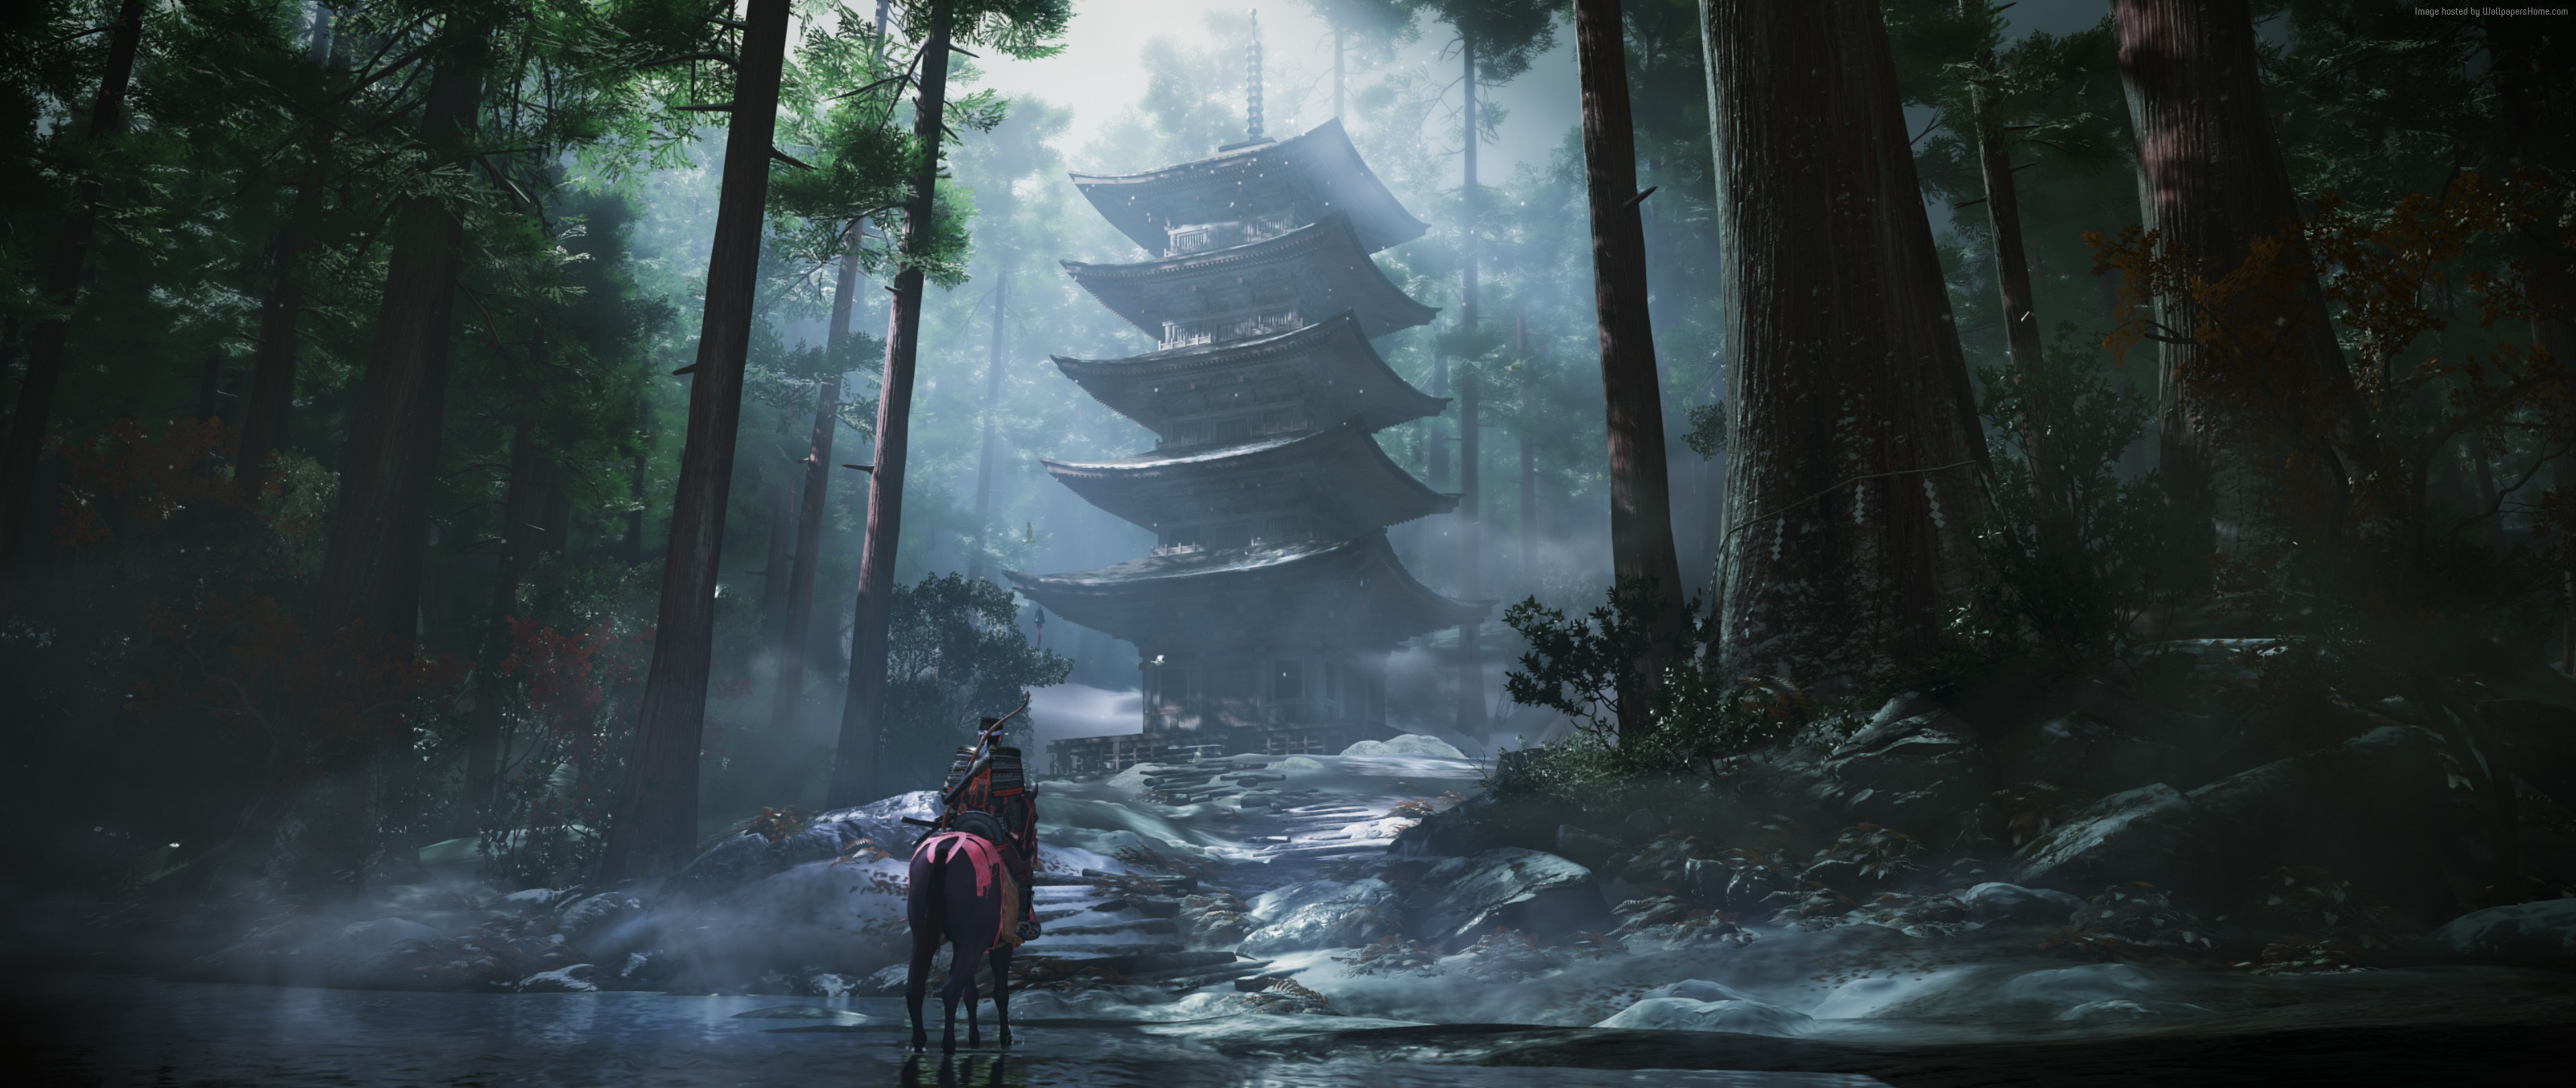 Ghost of Tsushima - QooApp คลังเกม